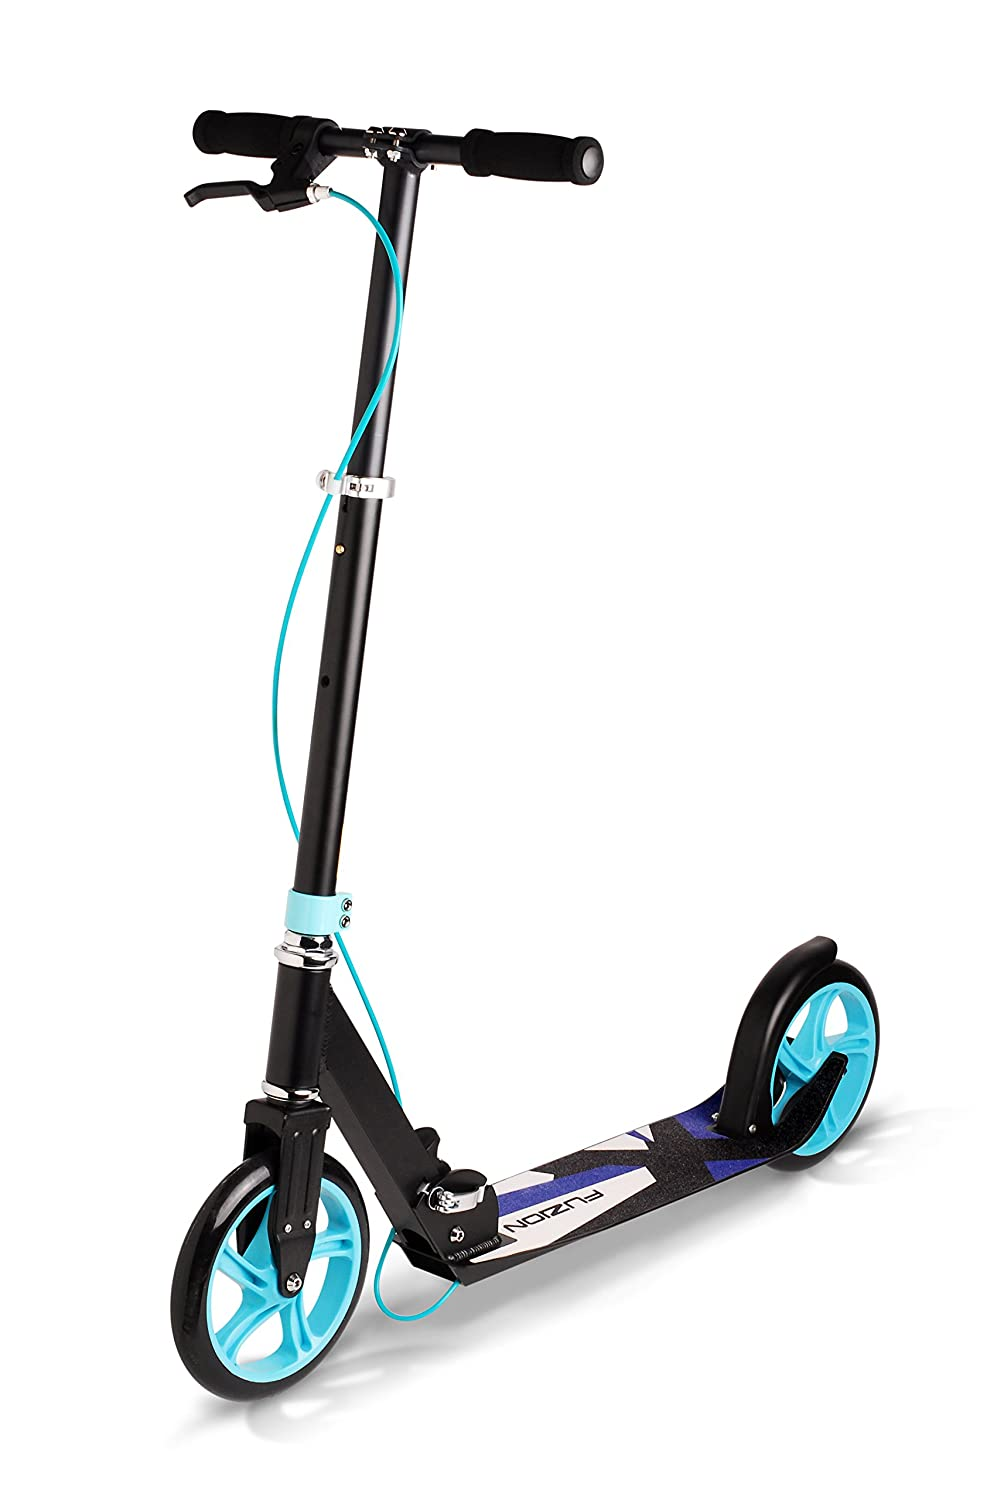 Top 10 Best Kick Scooter For Commuting - Buyer's Guide 35